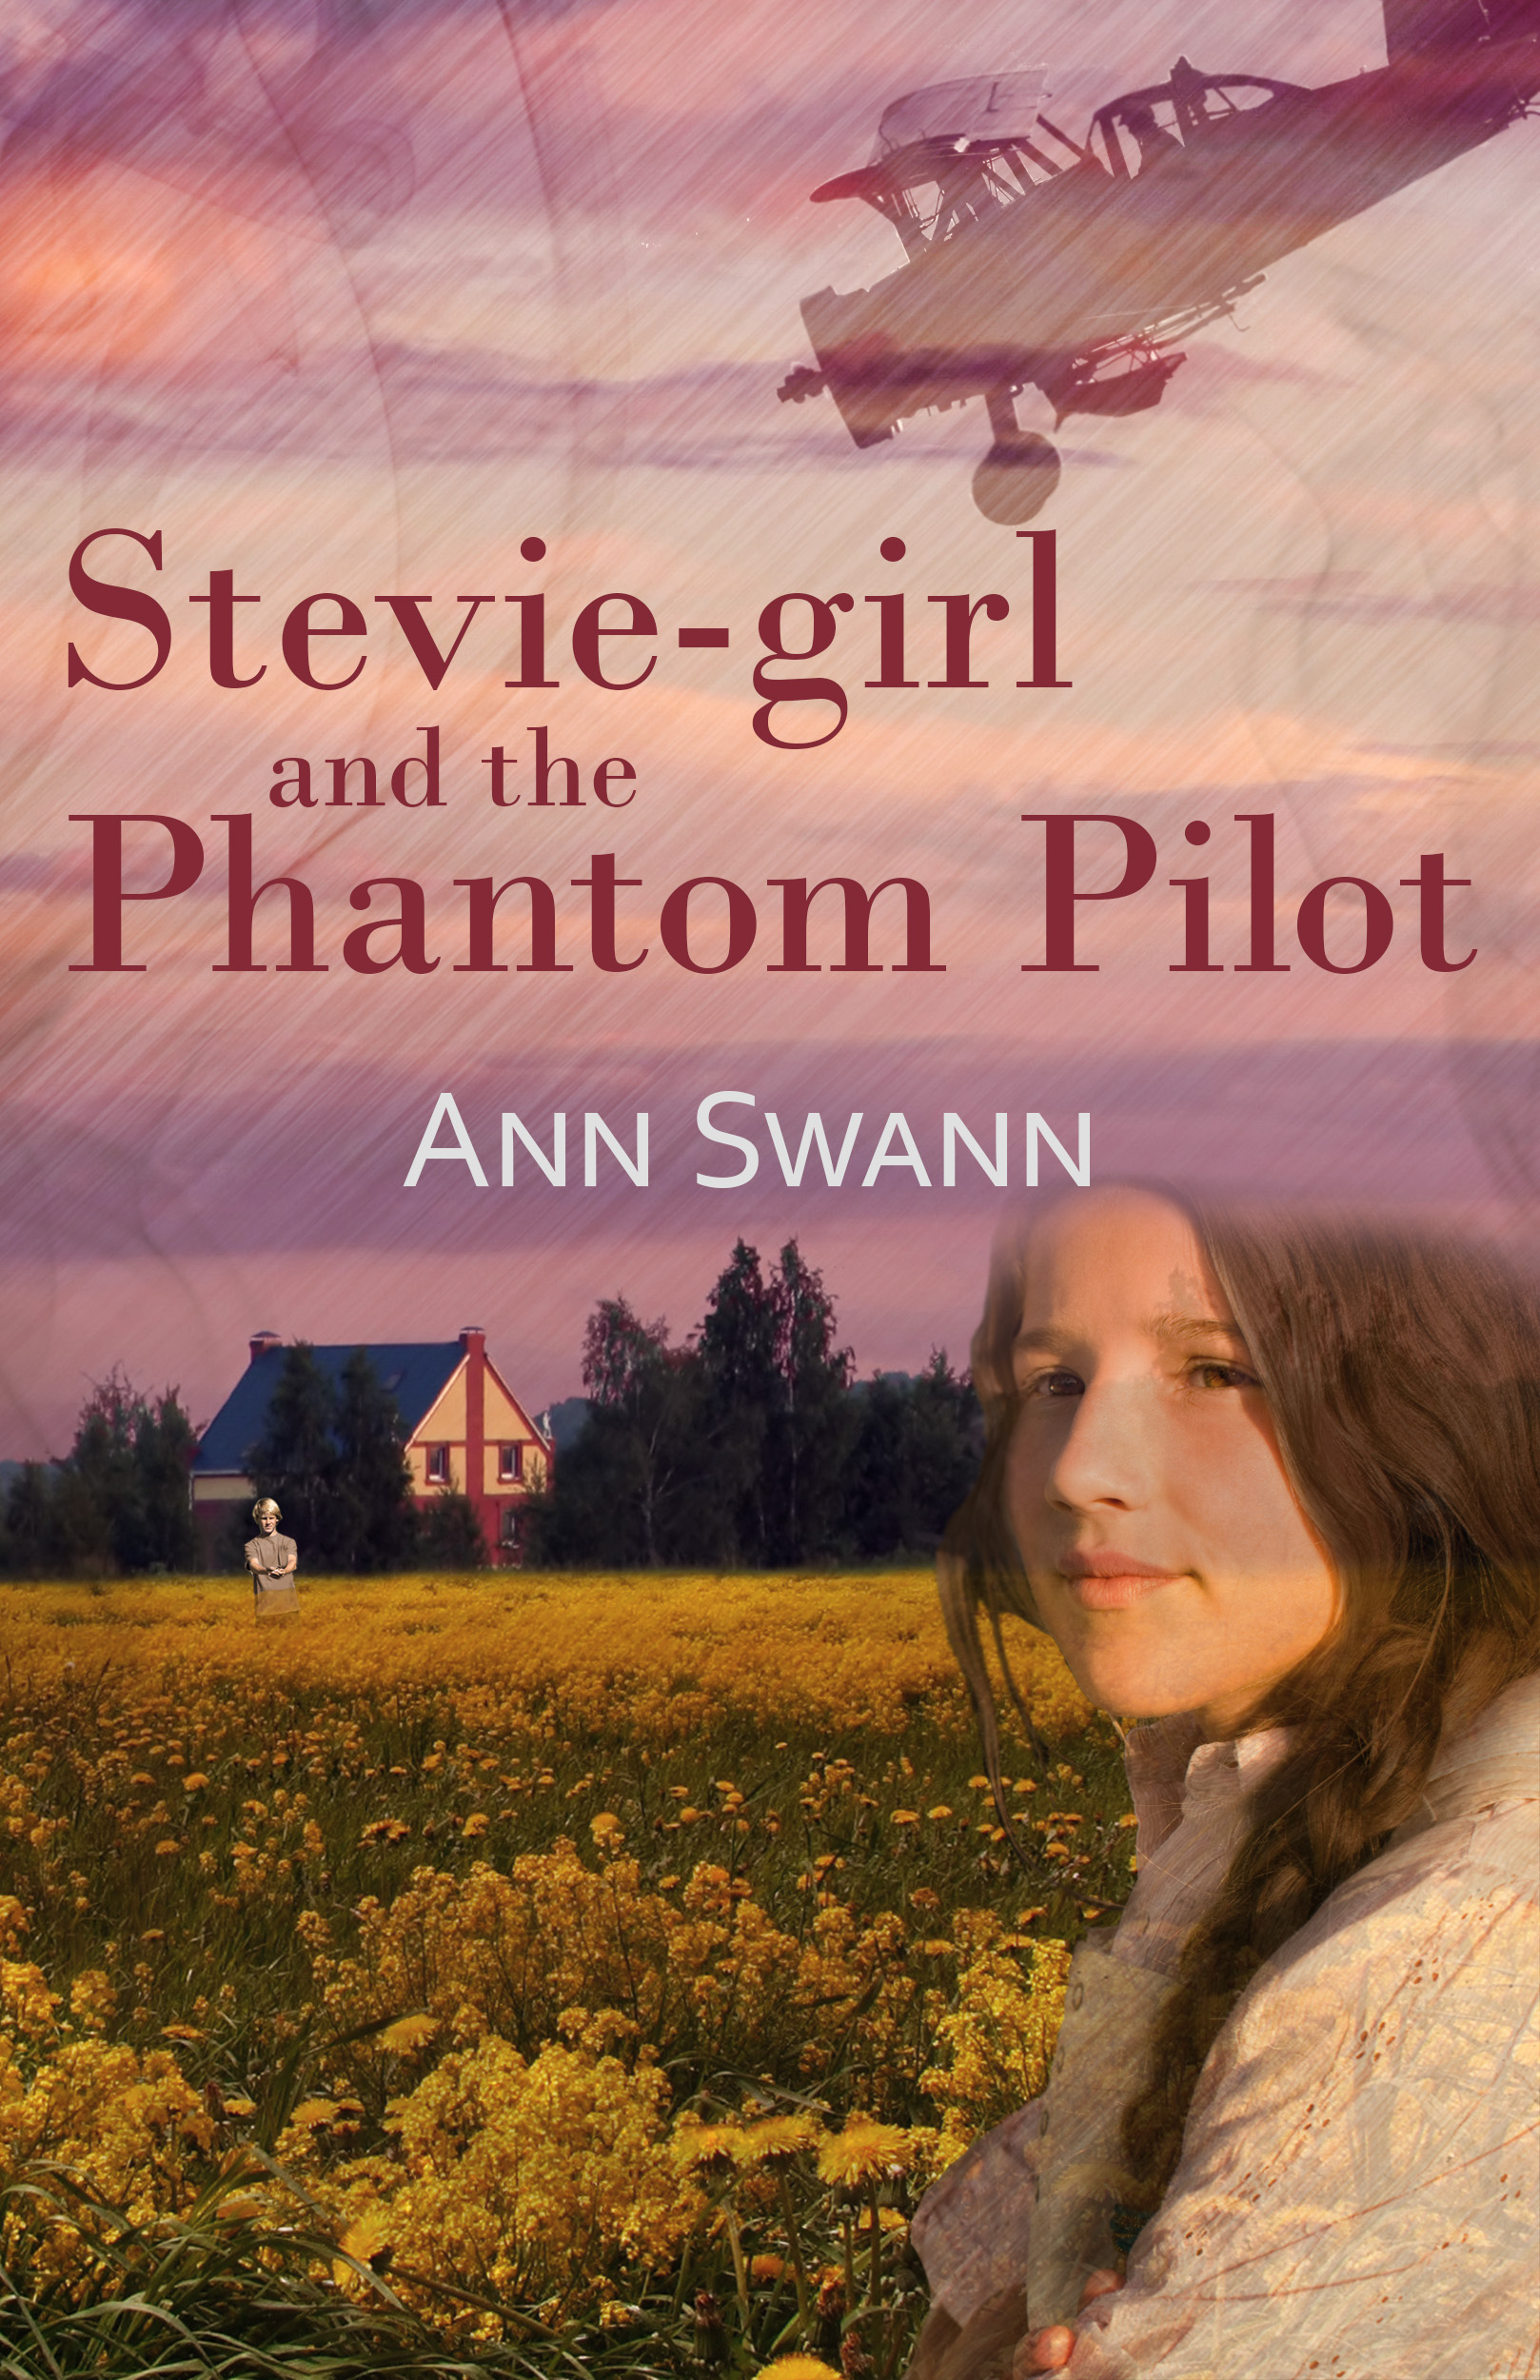 Stevie-girl and the Phantom Pilot (Book One of The Phantom Series)